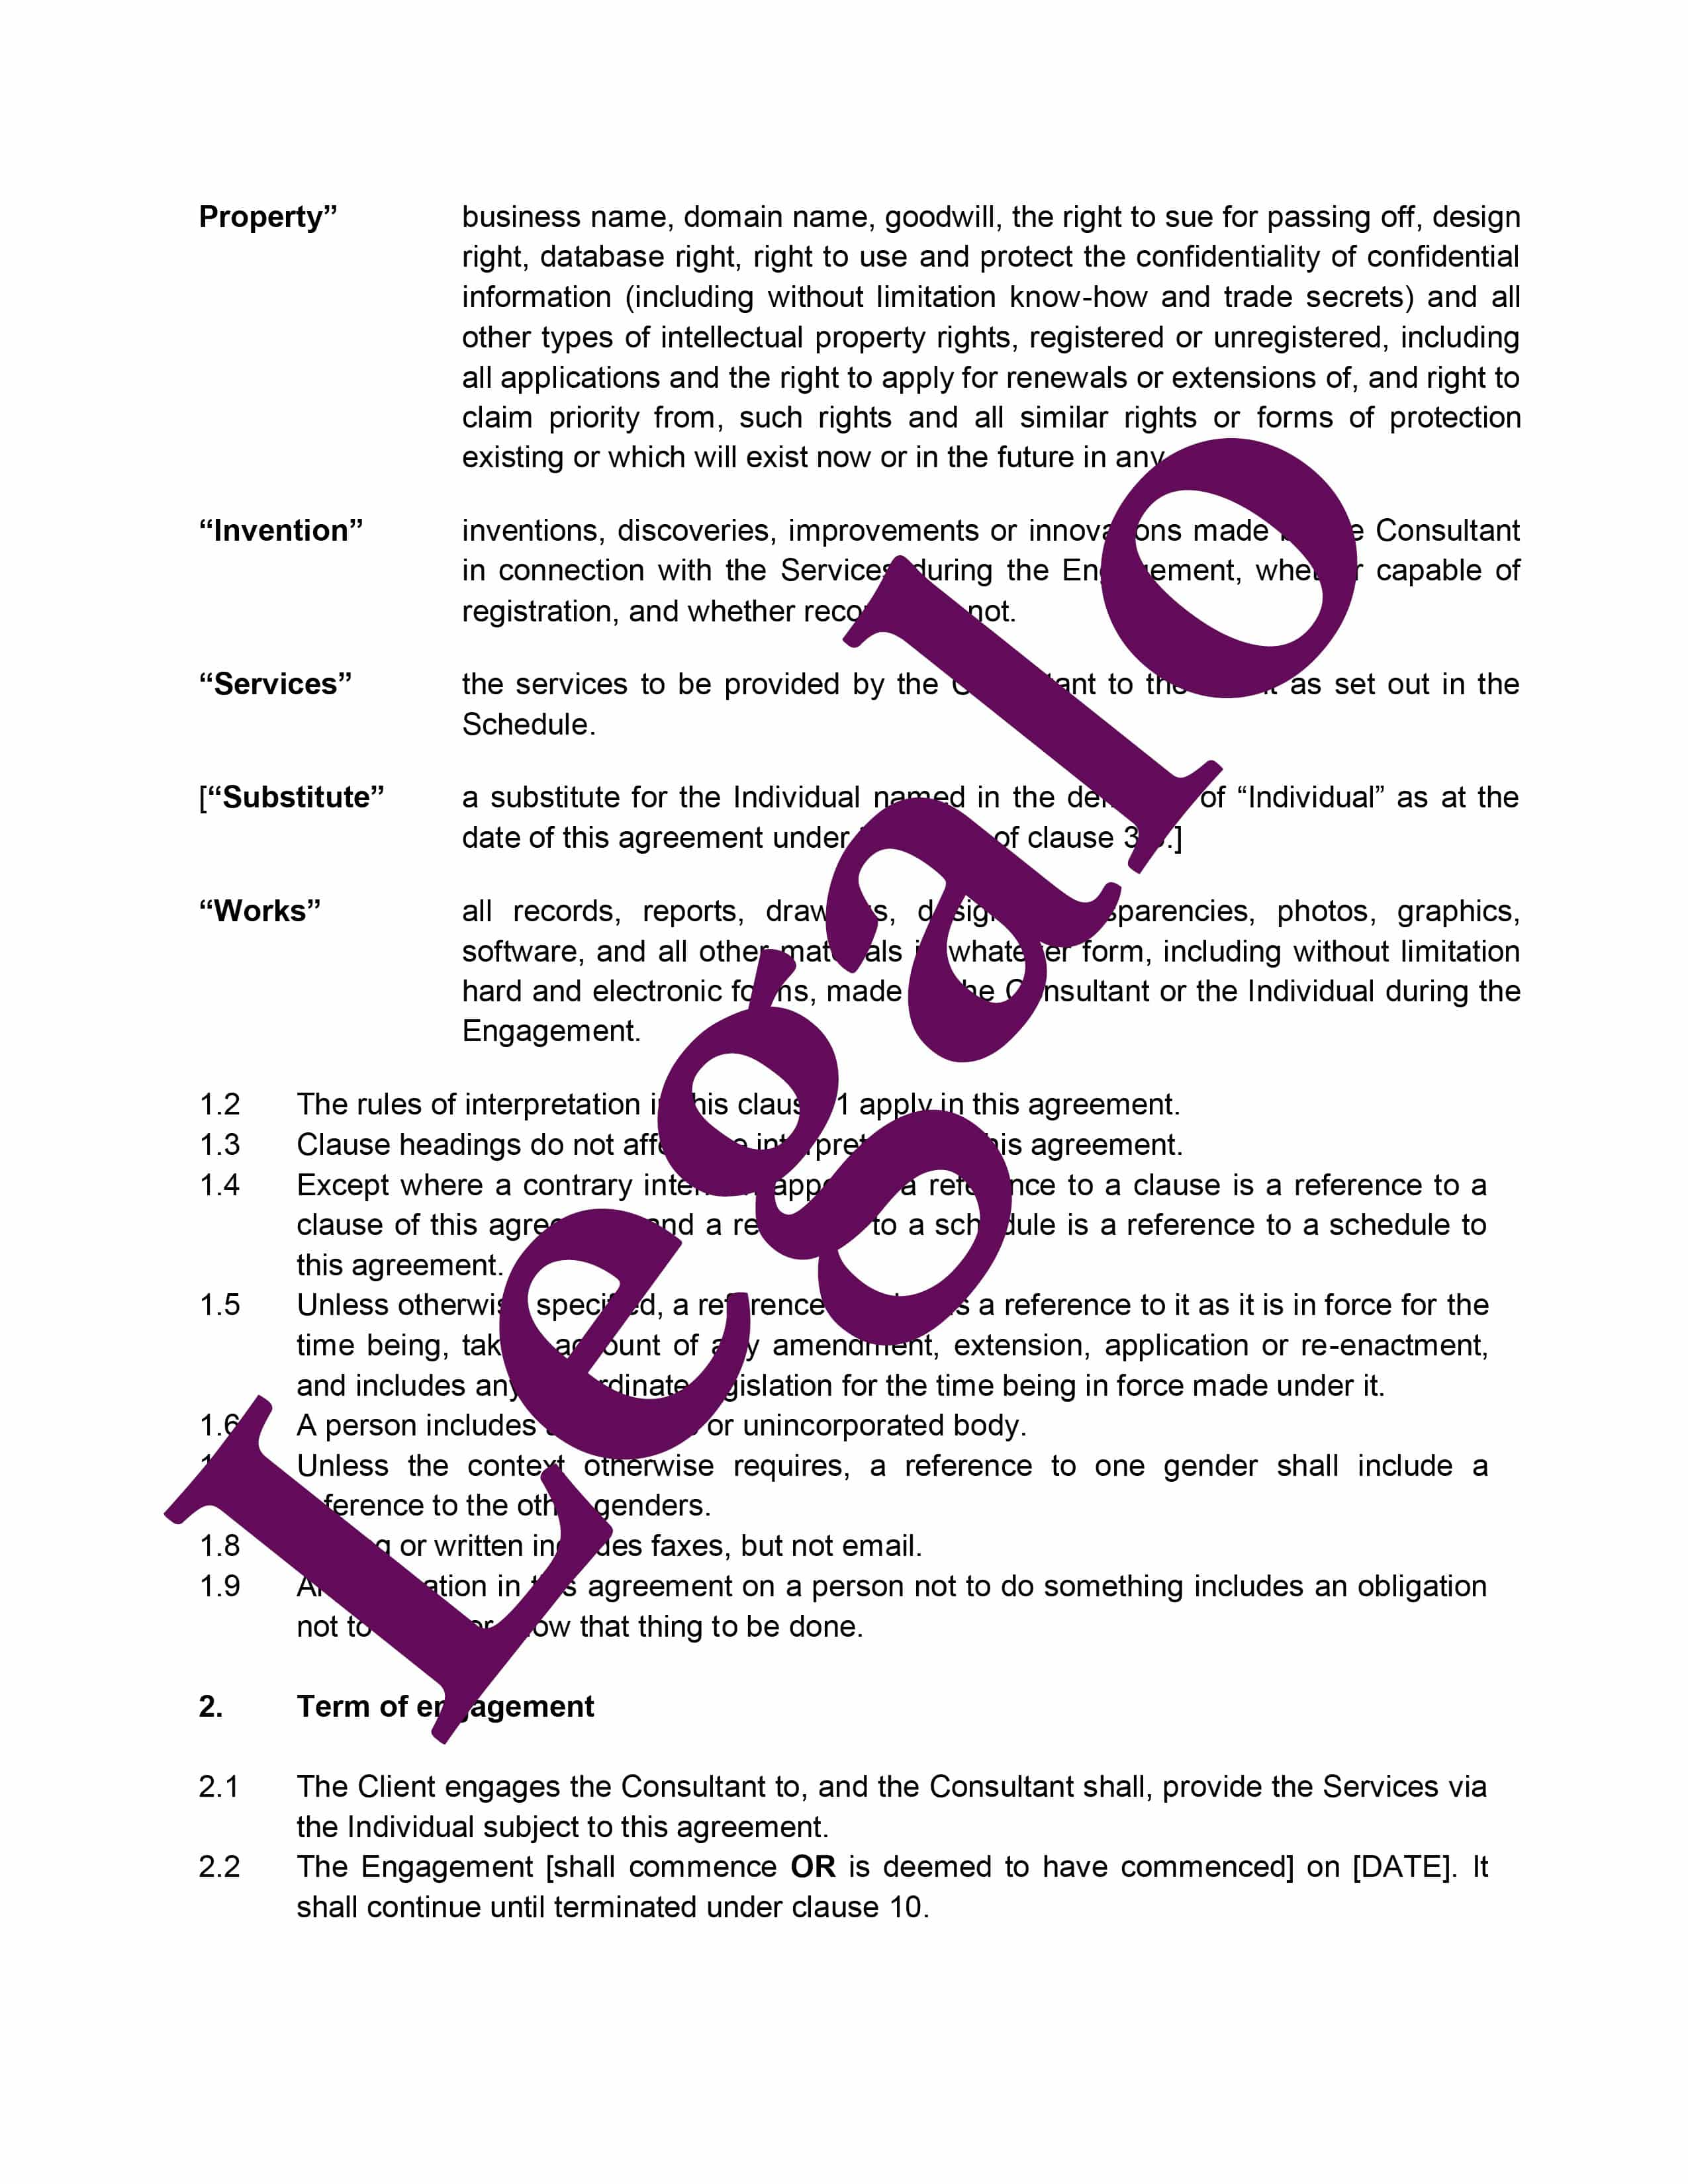 Consultancy Agreement (Company) Preview 2 image